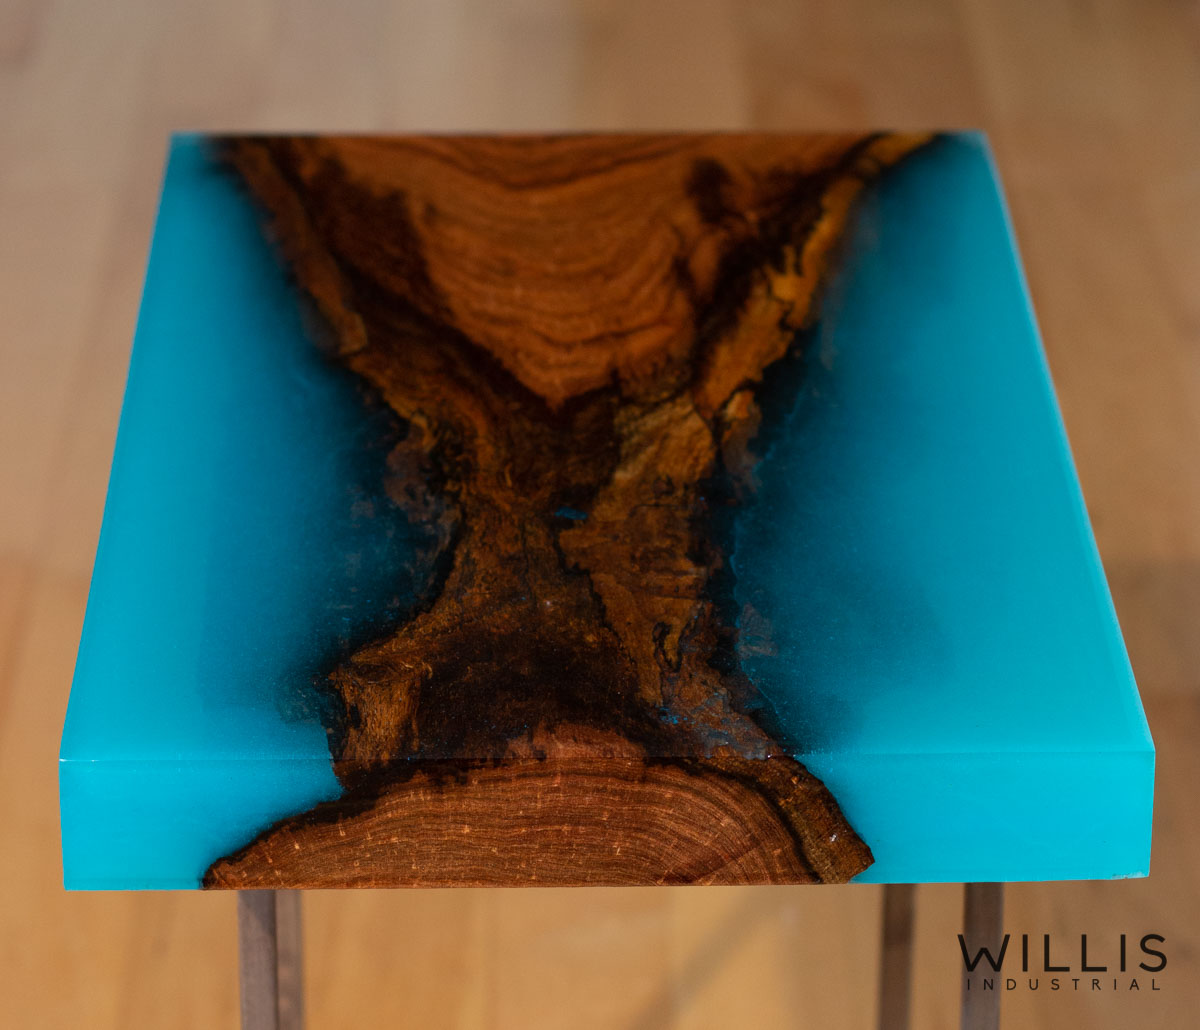 Willis Industrial Furniture | Rustic, Modern Furniture | Mesquite Slab Coffee Table with Transparent Turquoise Epoxy